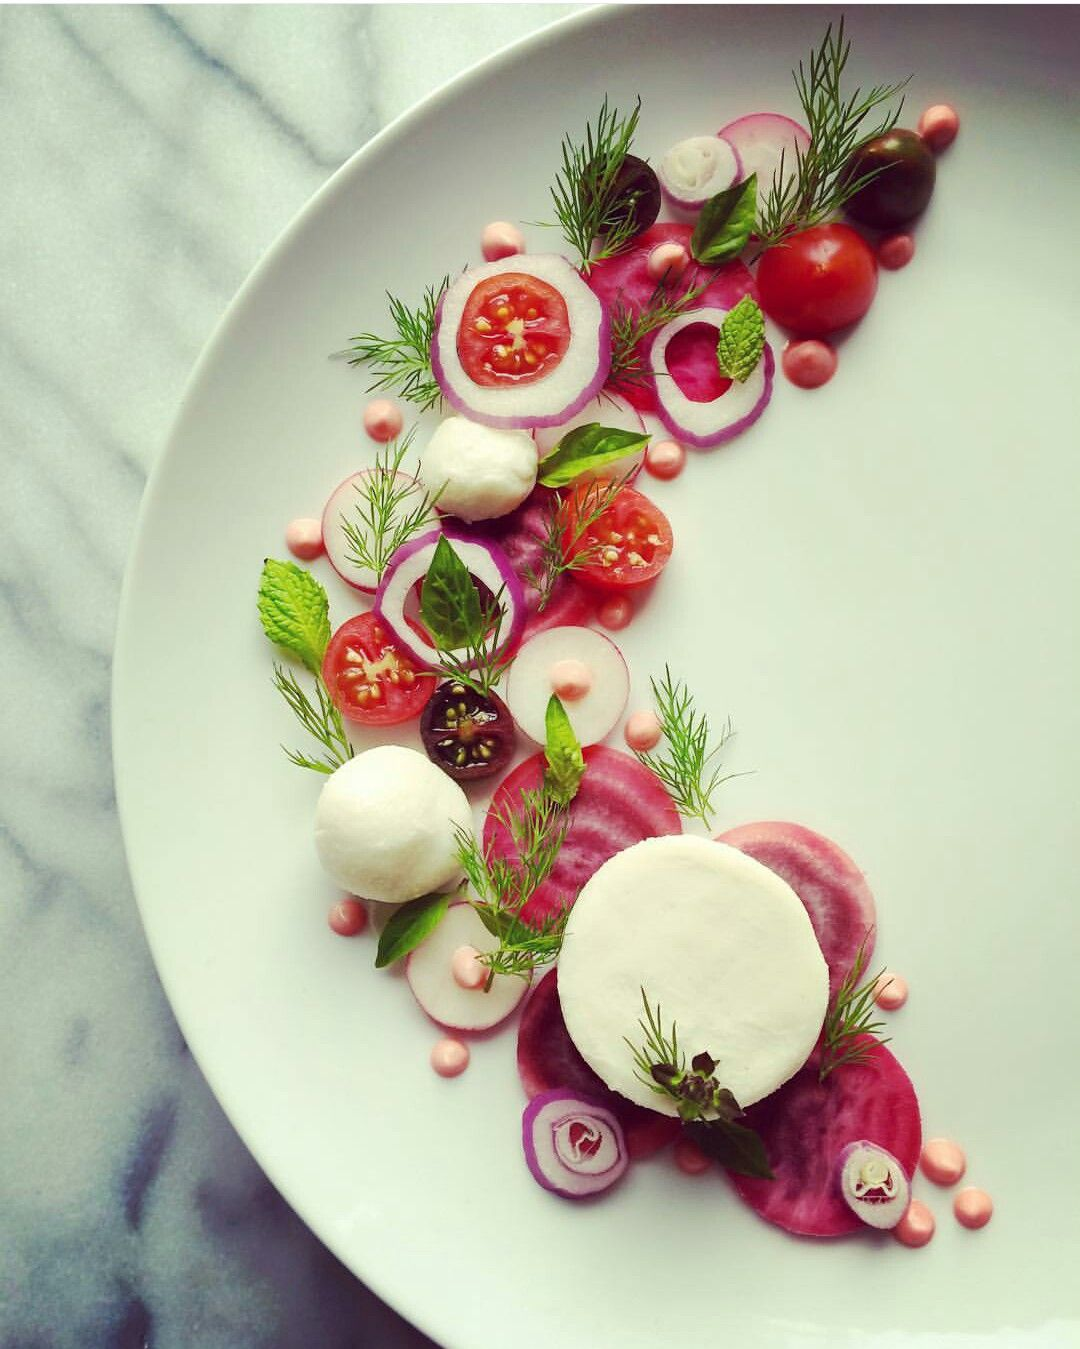 Pin by Foodesigns on Organic recipes | Pinterest | Aioli, Onions and ...